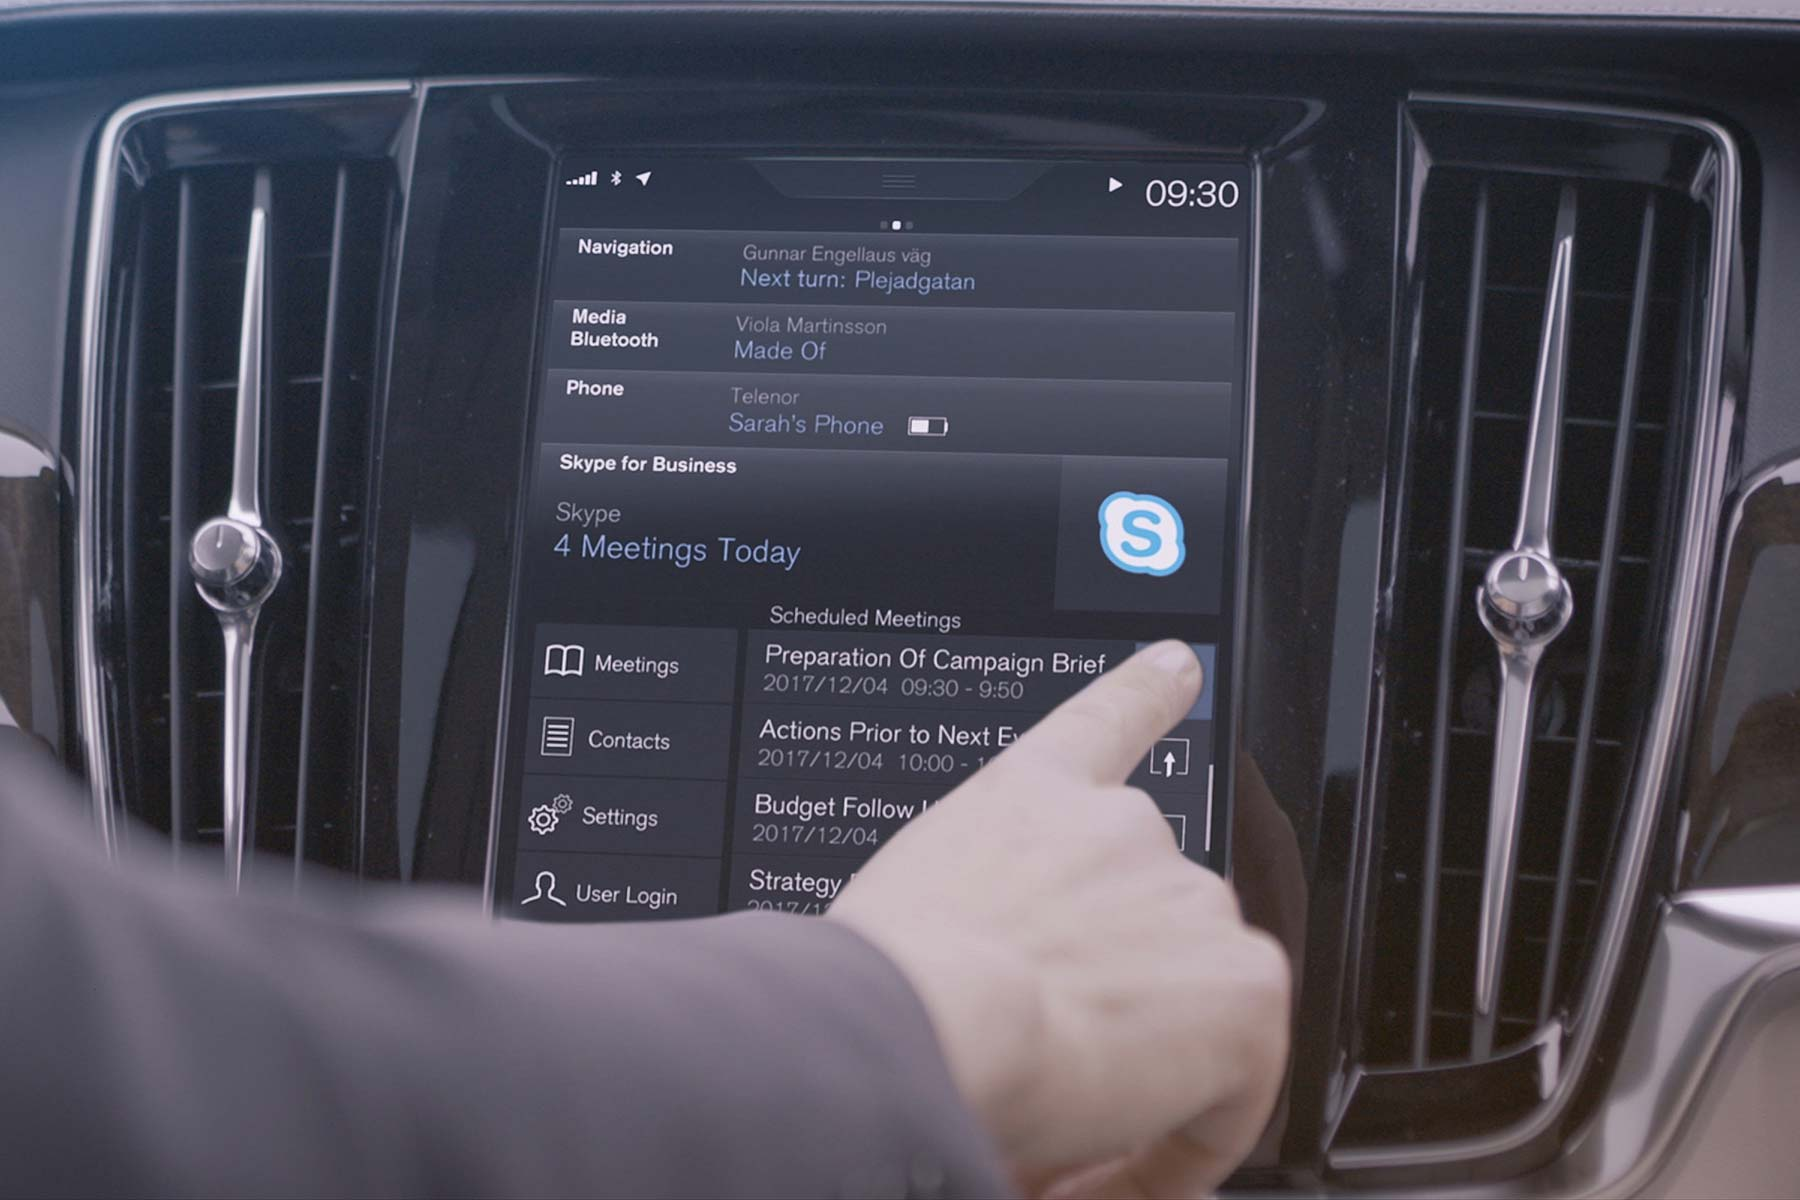 Using Skype from a Volvo